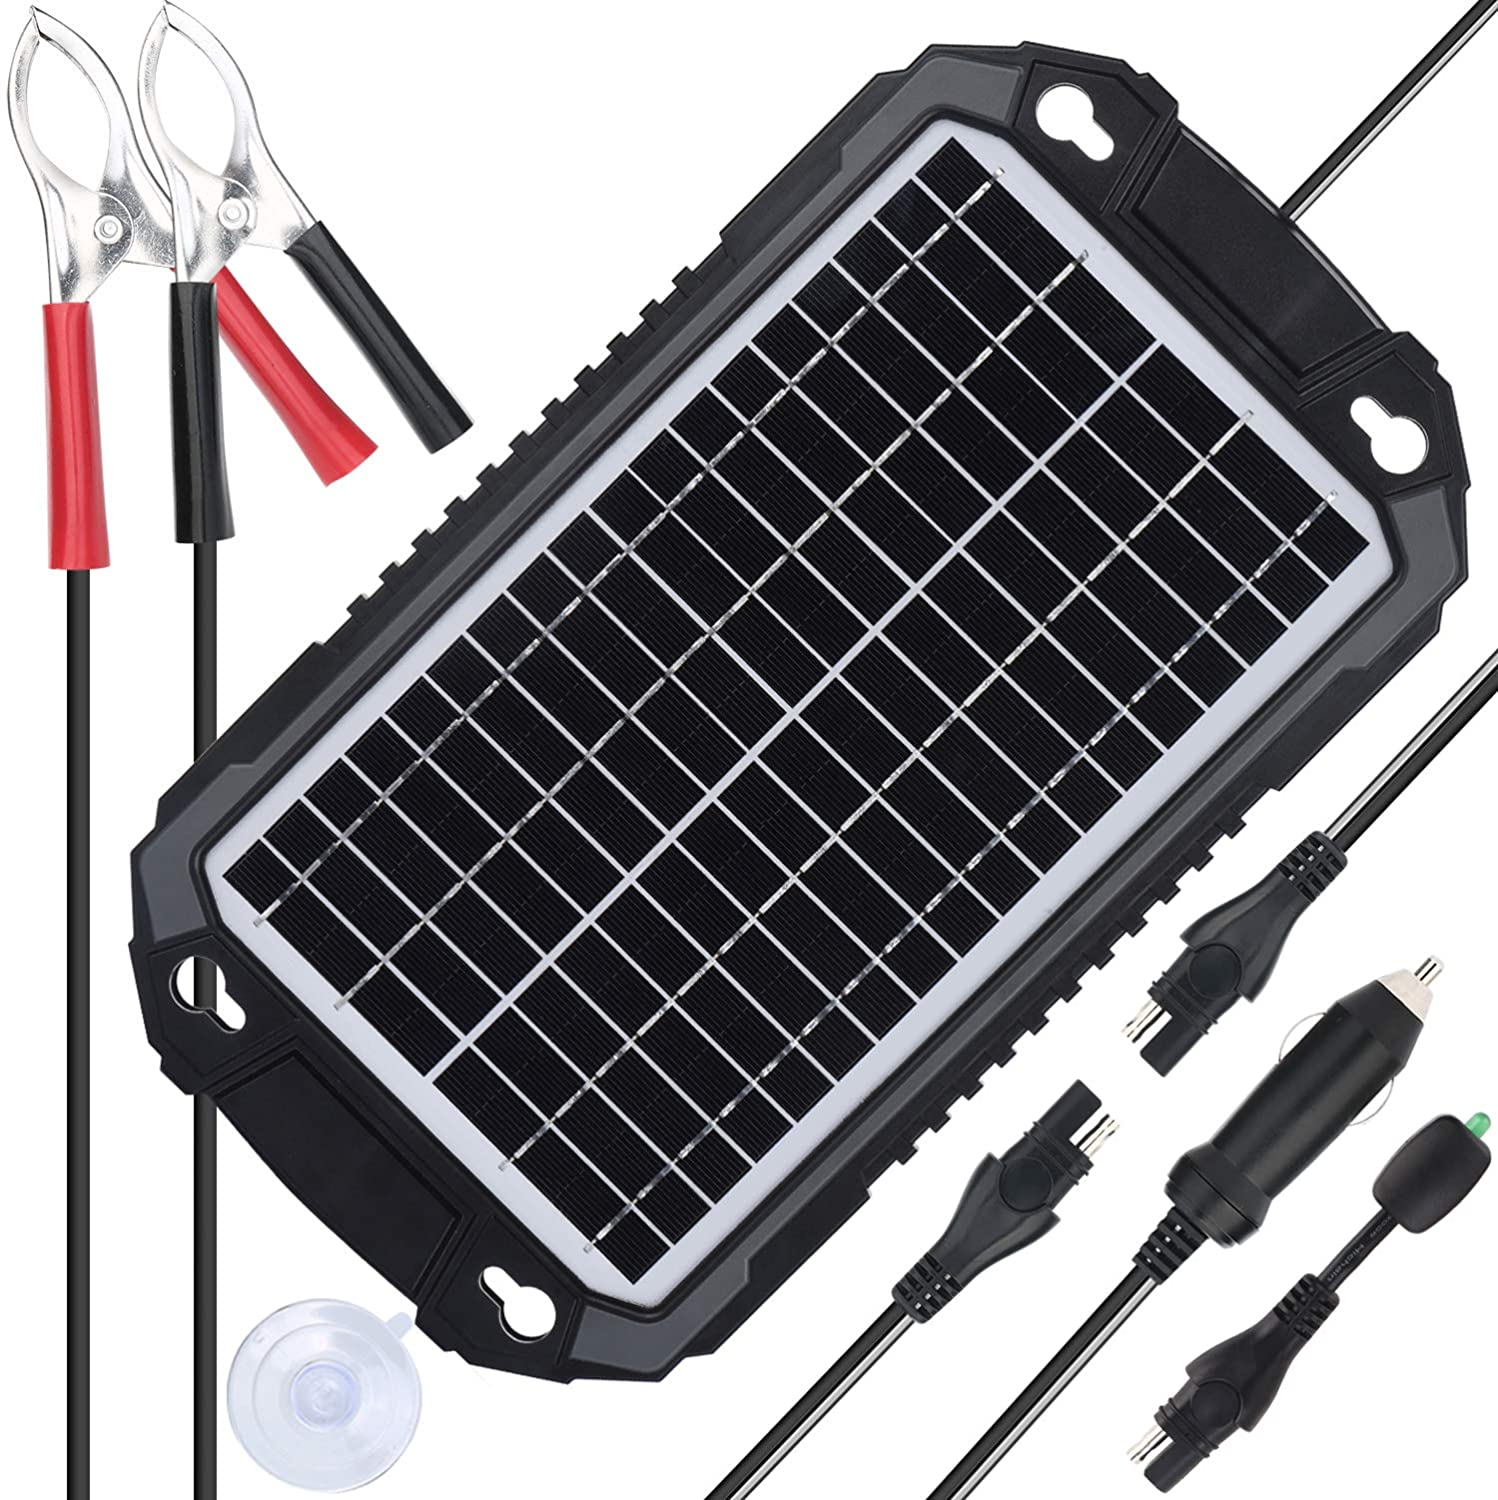 SUNER POWER 12V Solar Car Battery Charger Maintainer – Waterproof 8W Solar Panel Trickle Charging Kit for Automotive, Motorcycle, Boat, Marine, RV, Trailer, Powersports, Snowmobile, etc.